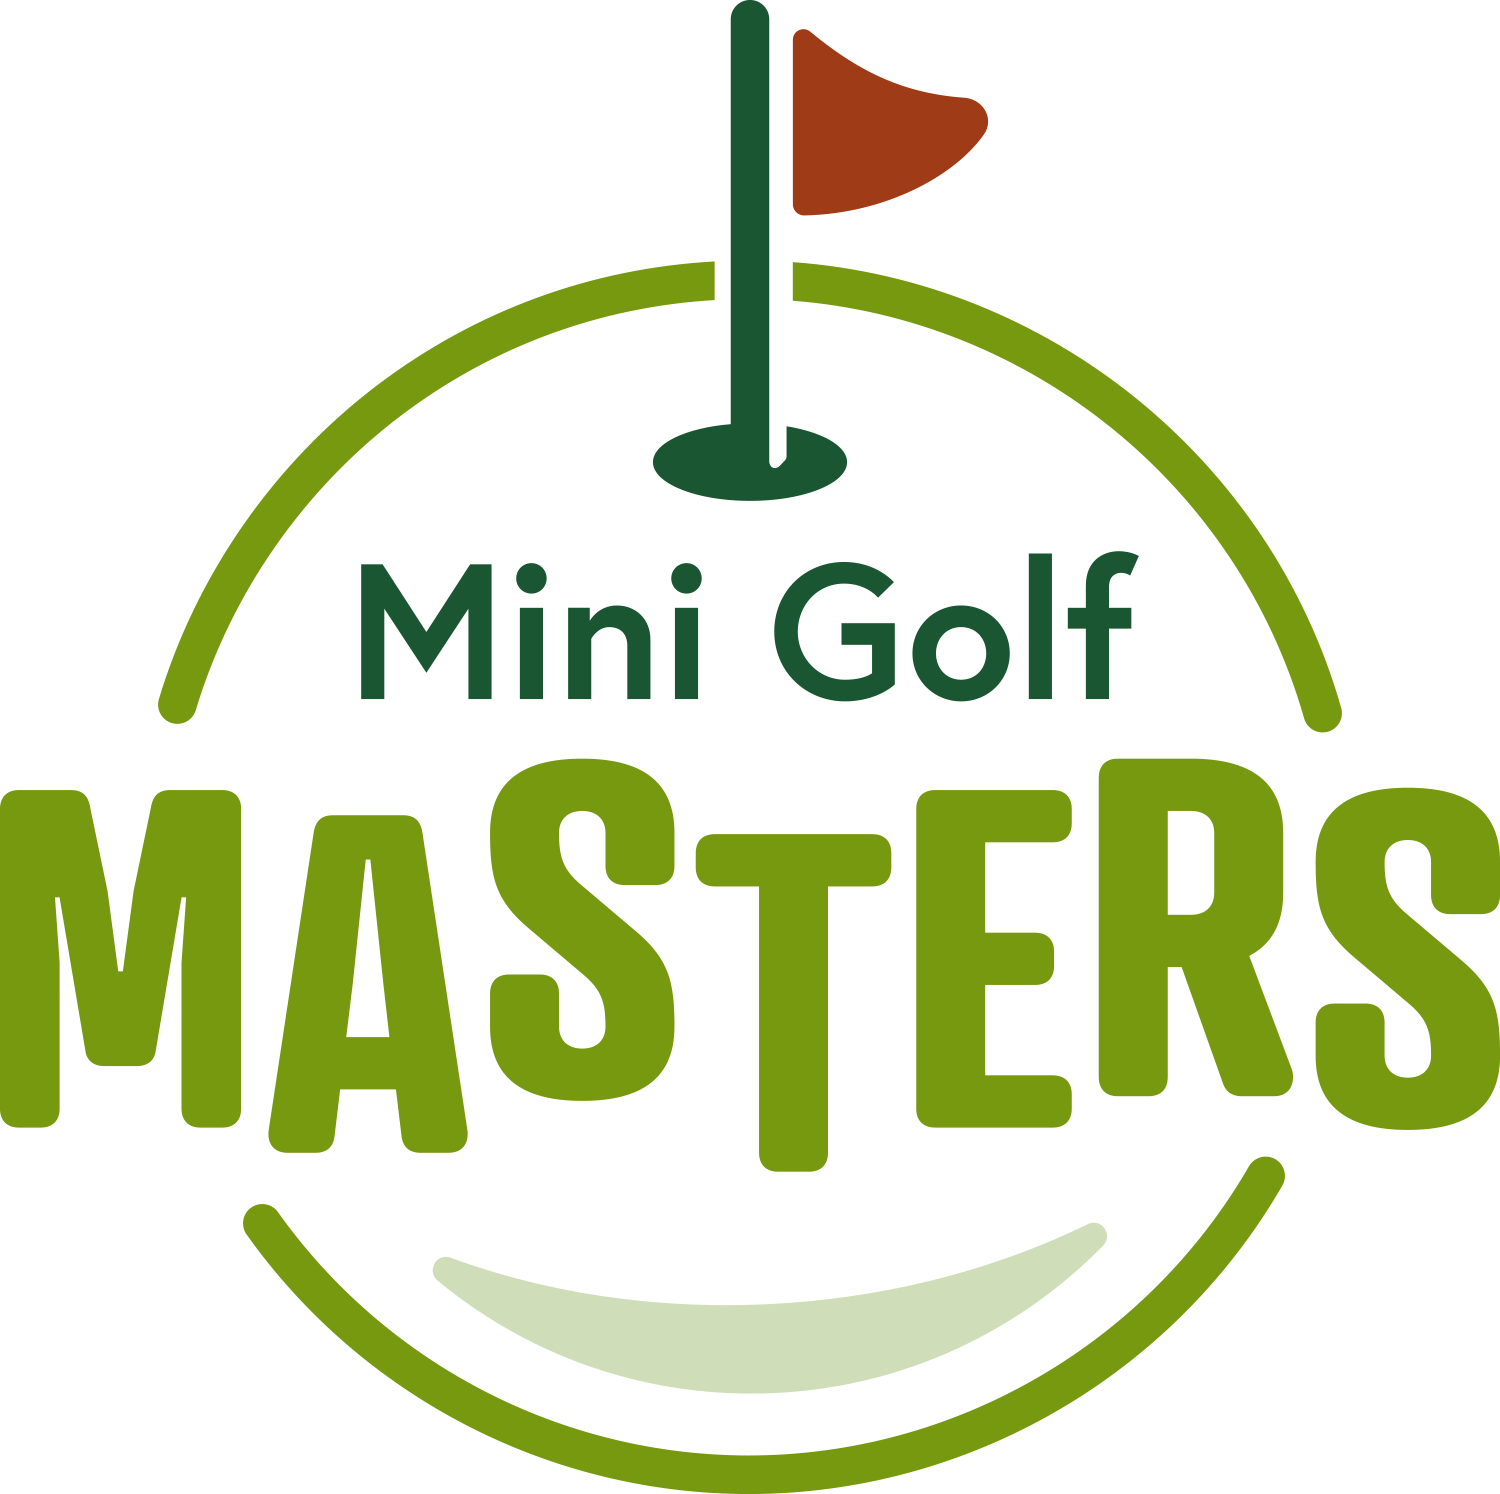 Mini Golf Masters 3col.png